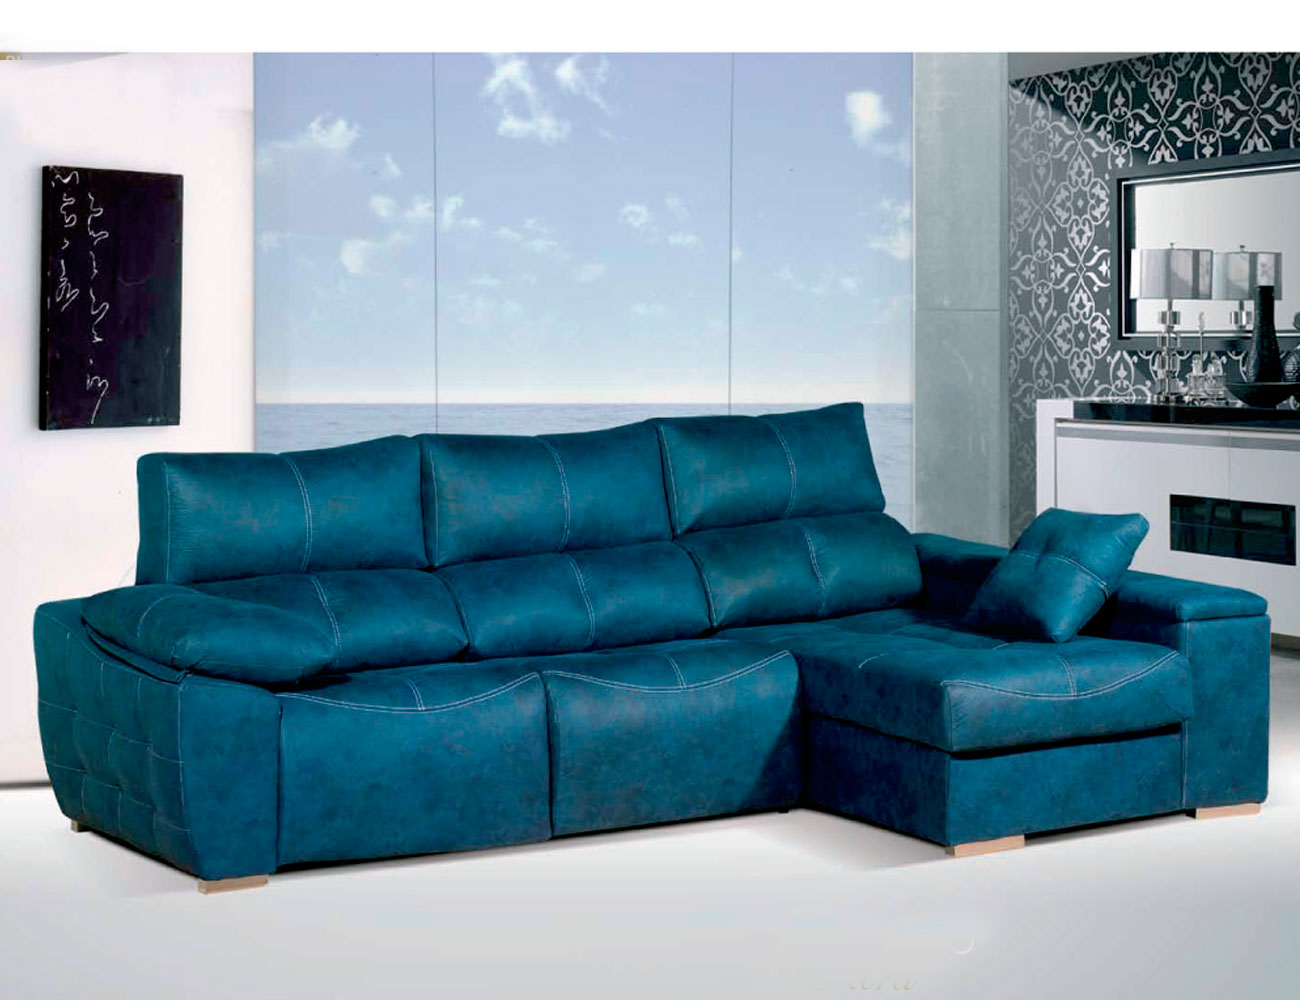 Sofa chaiselongue relax 2 motores anti manchas turquesa52